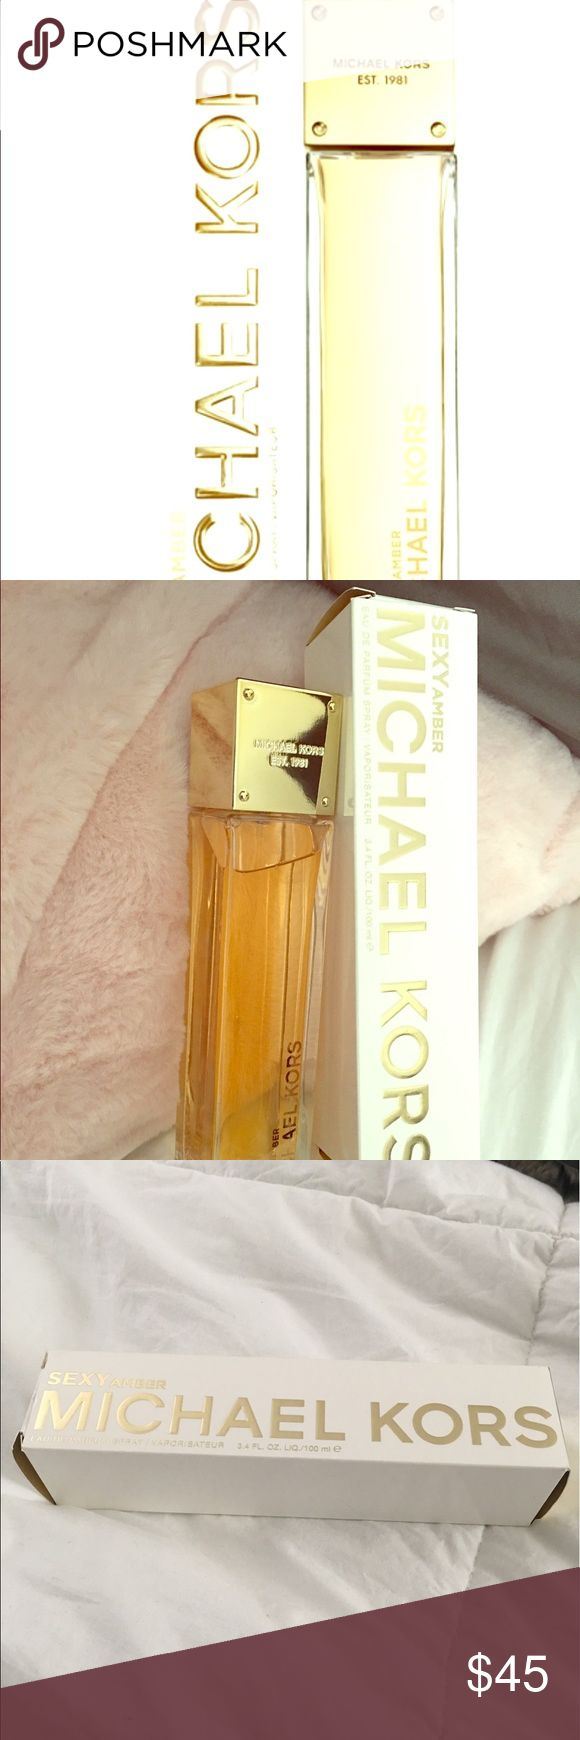 Micheal Kors perfume New bottle of Micheal Kors Sexy Amber Parfum. Retails in department stores for $100. I opened it to take pics. Eau de parfum spray, 3.4 for. oz. Michael Kors Other